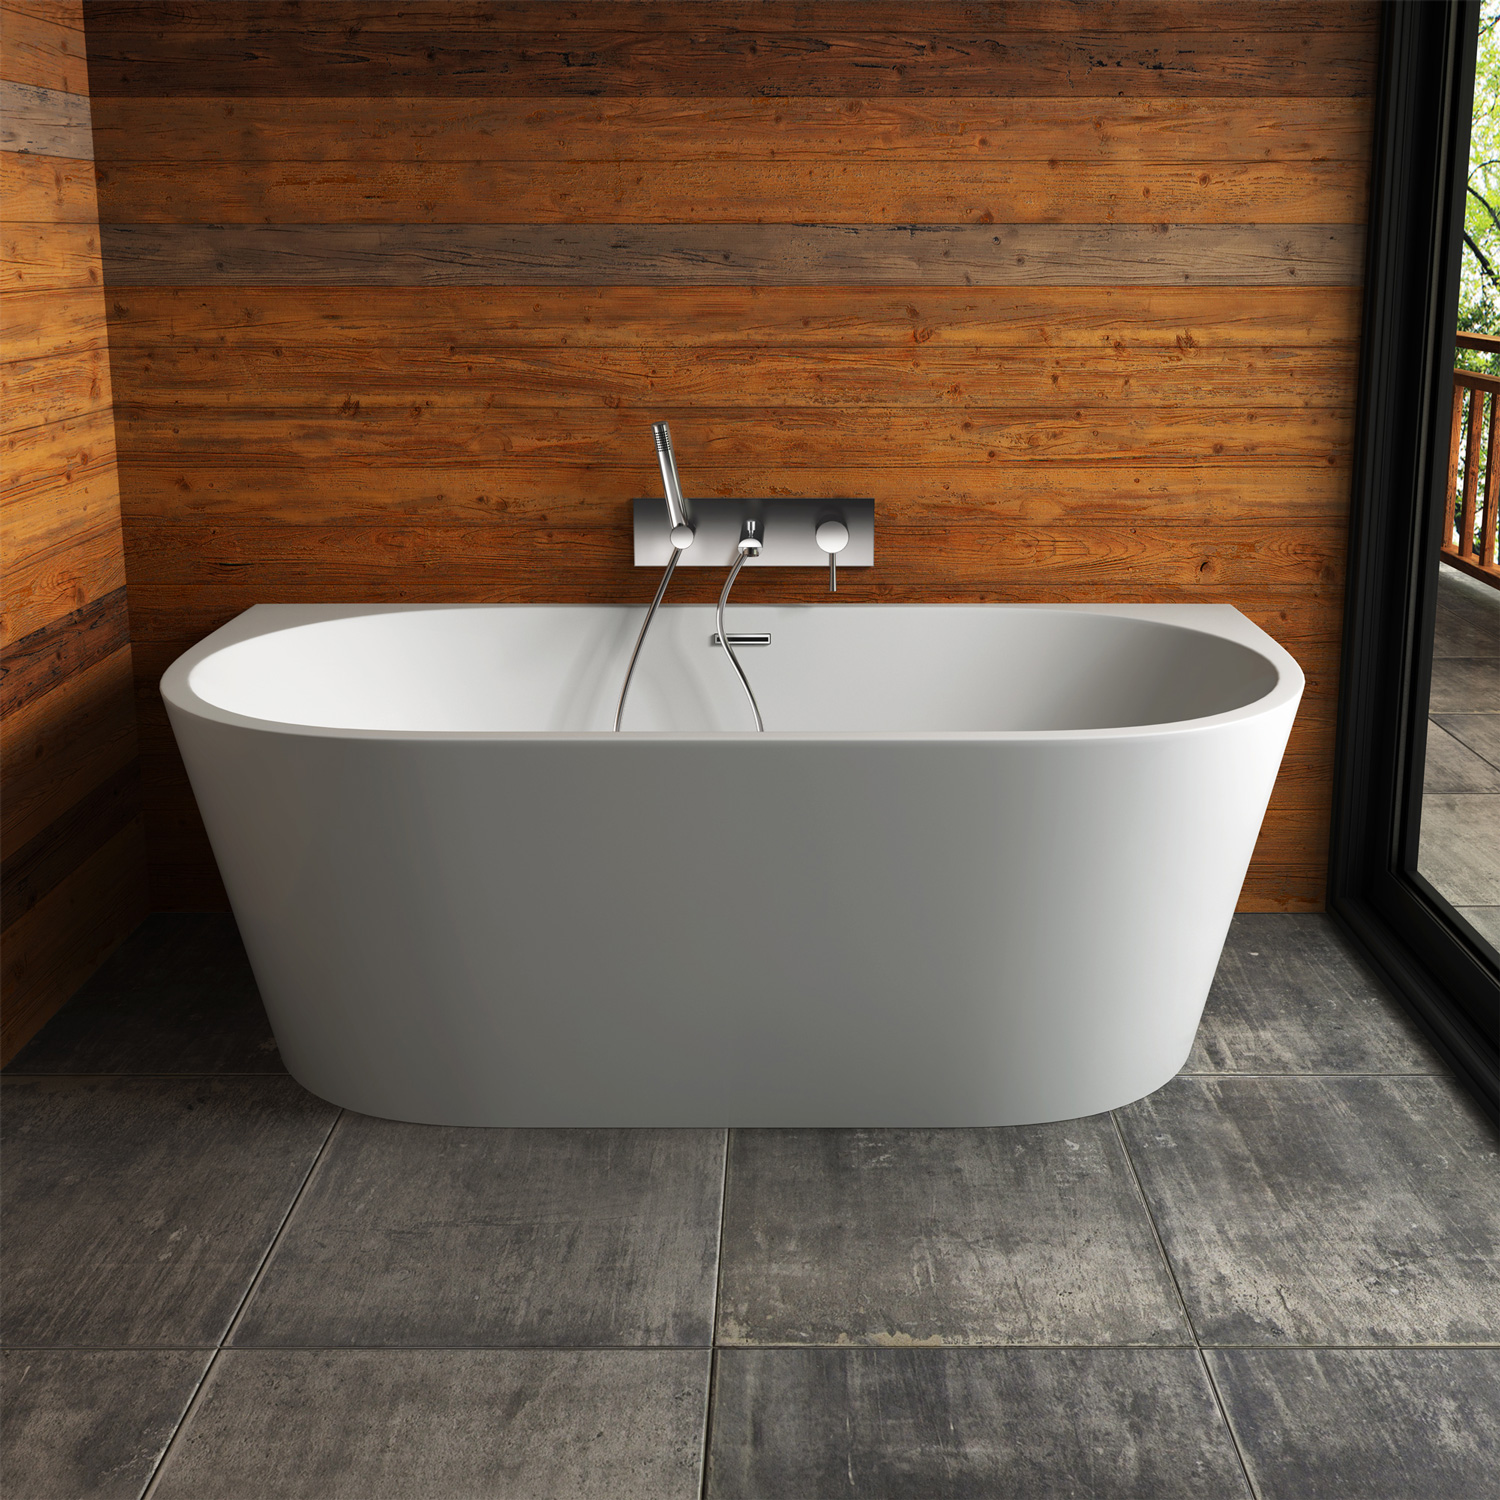 or acrylic with tub cheap look pairing complete this your mounted freestanding addition tubs l the ideal contemporary bathroom will bath filler a leith to wall by be